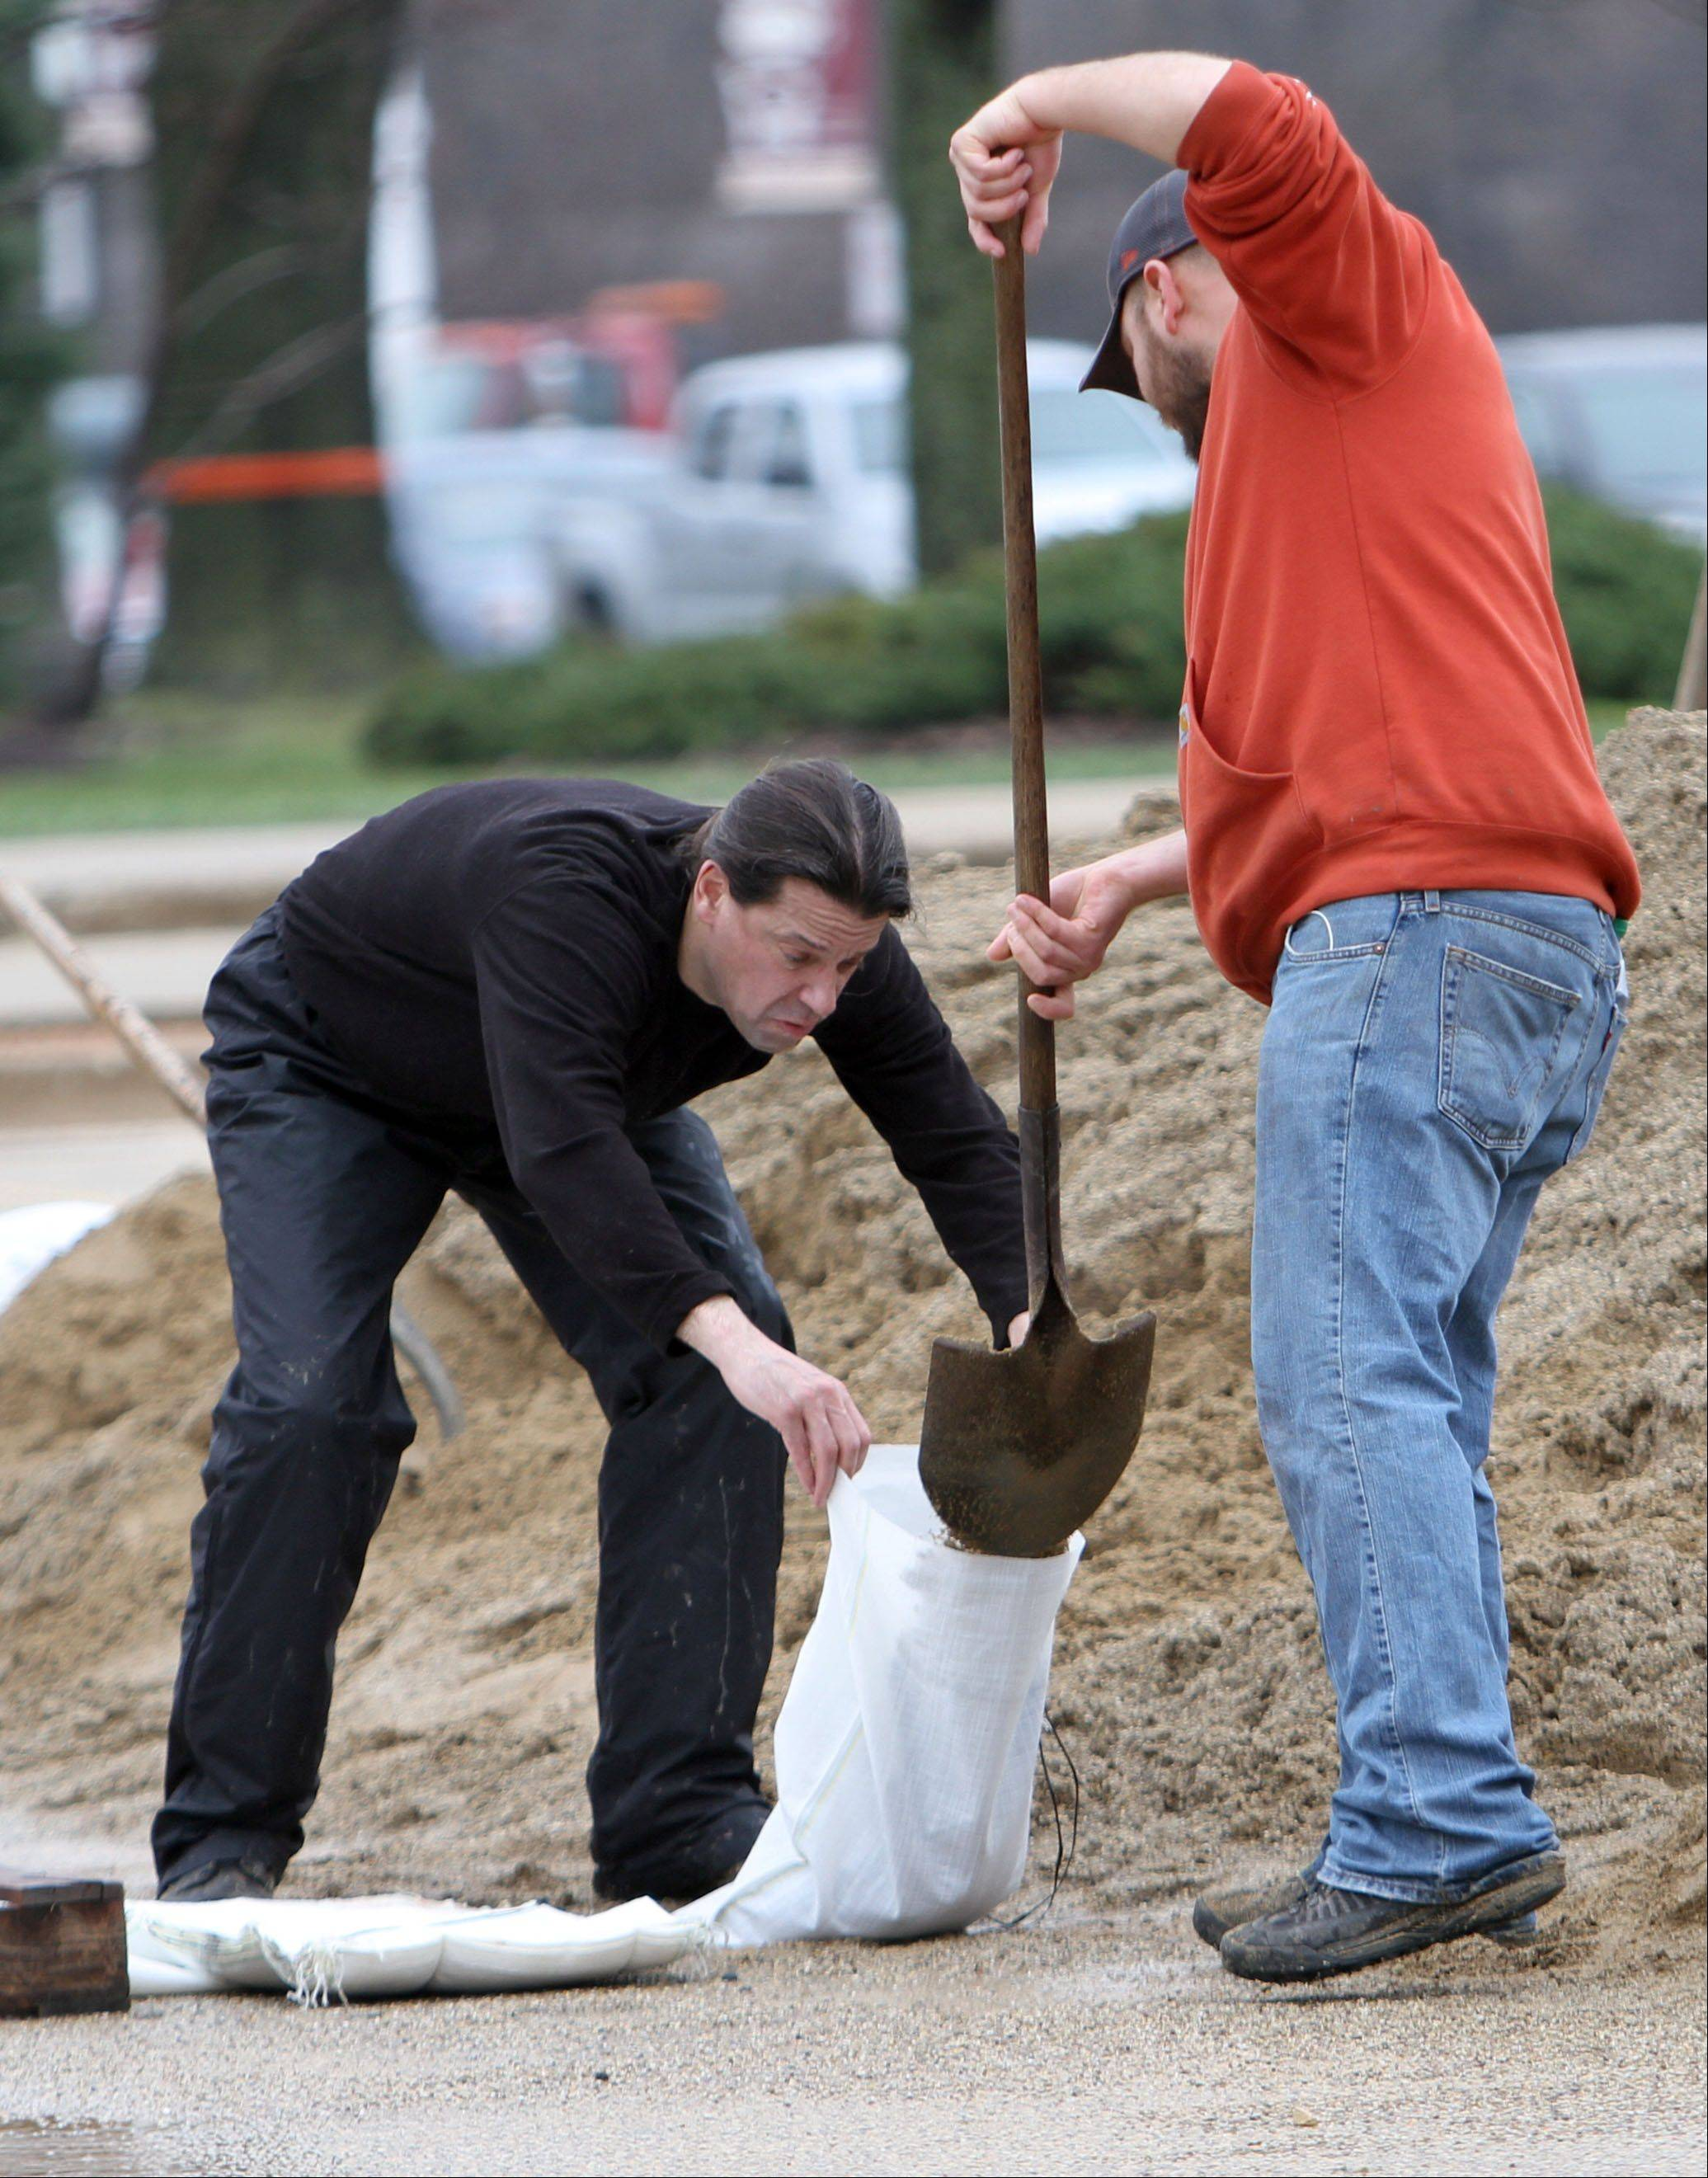 Volunteers Mark Horvat, left, and David Gonzalez, both of Gurnee, help sand bag in front of Viking School in preparation for flooding in Gurnee Thursday morning.